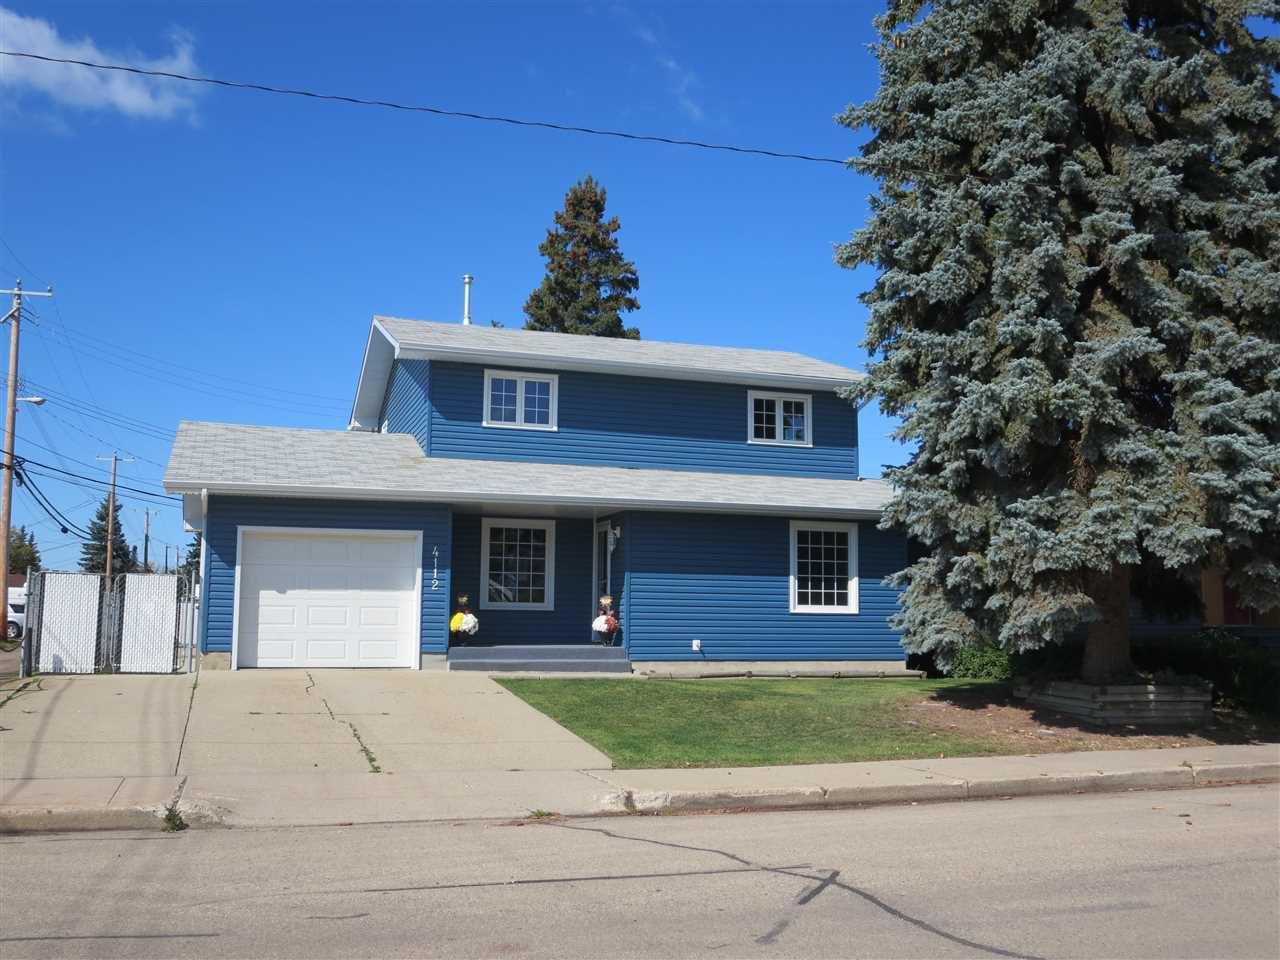 Main Photo: 4112 116 Street NW in Edmonton: Zone 16 House for sale : MLS®# E4172702